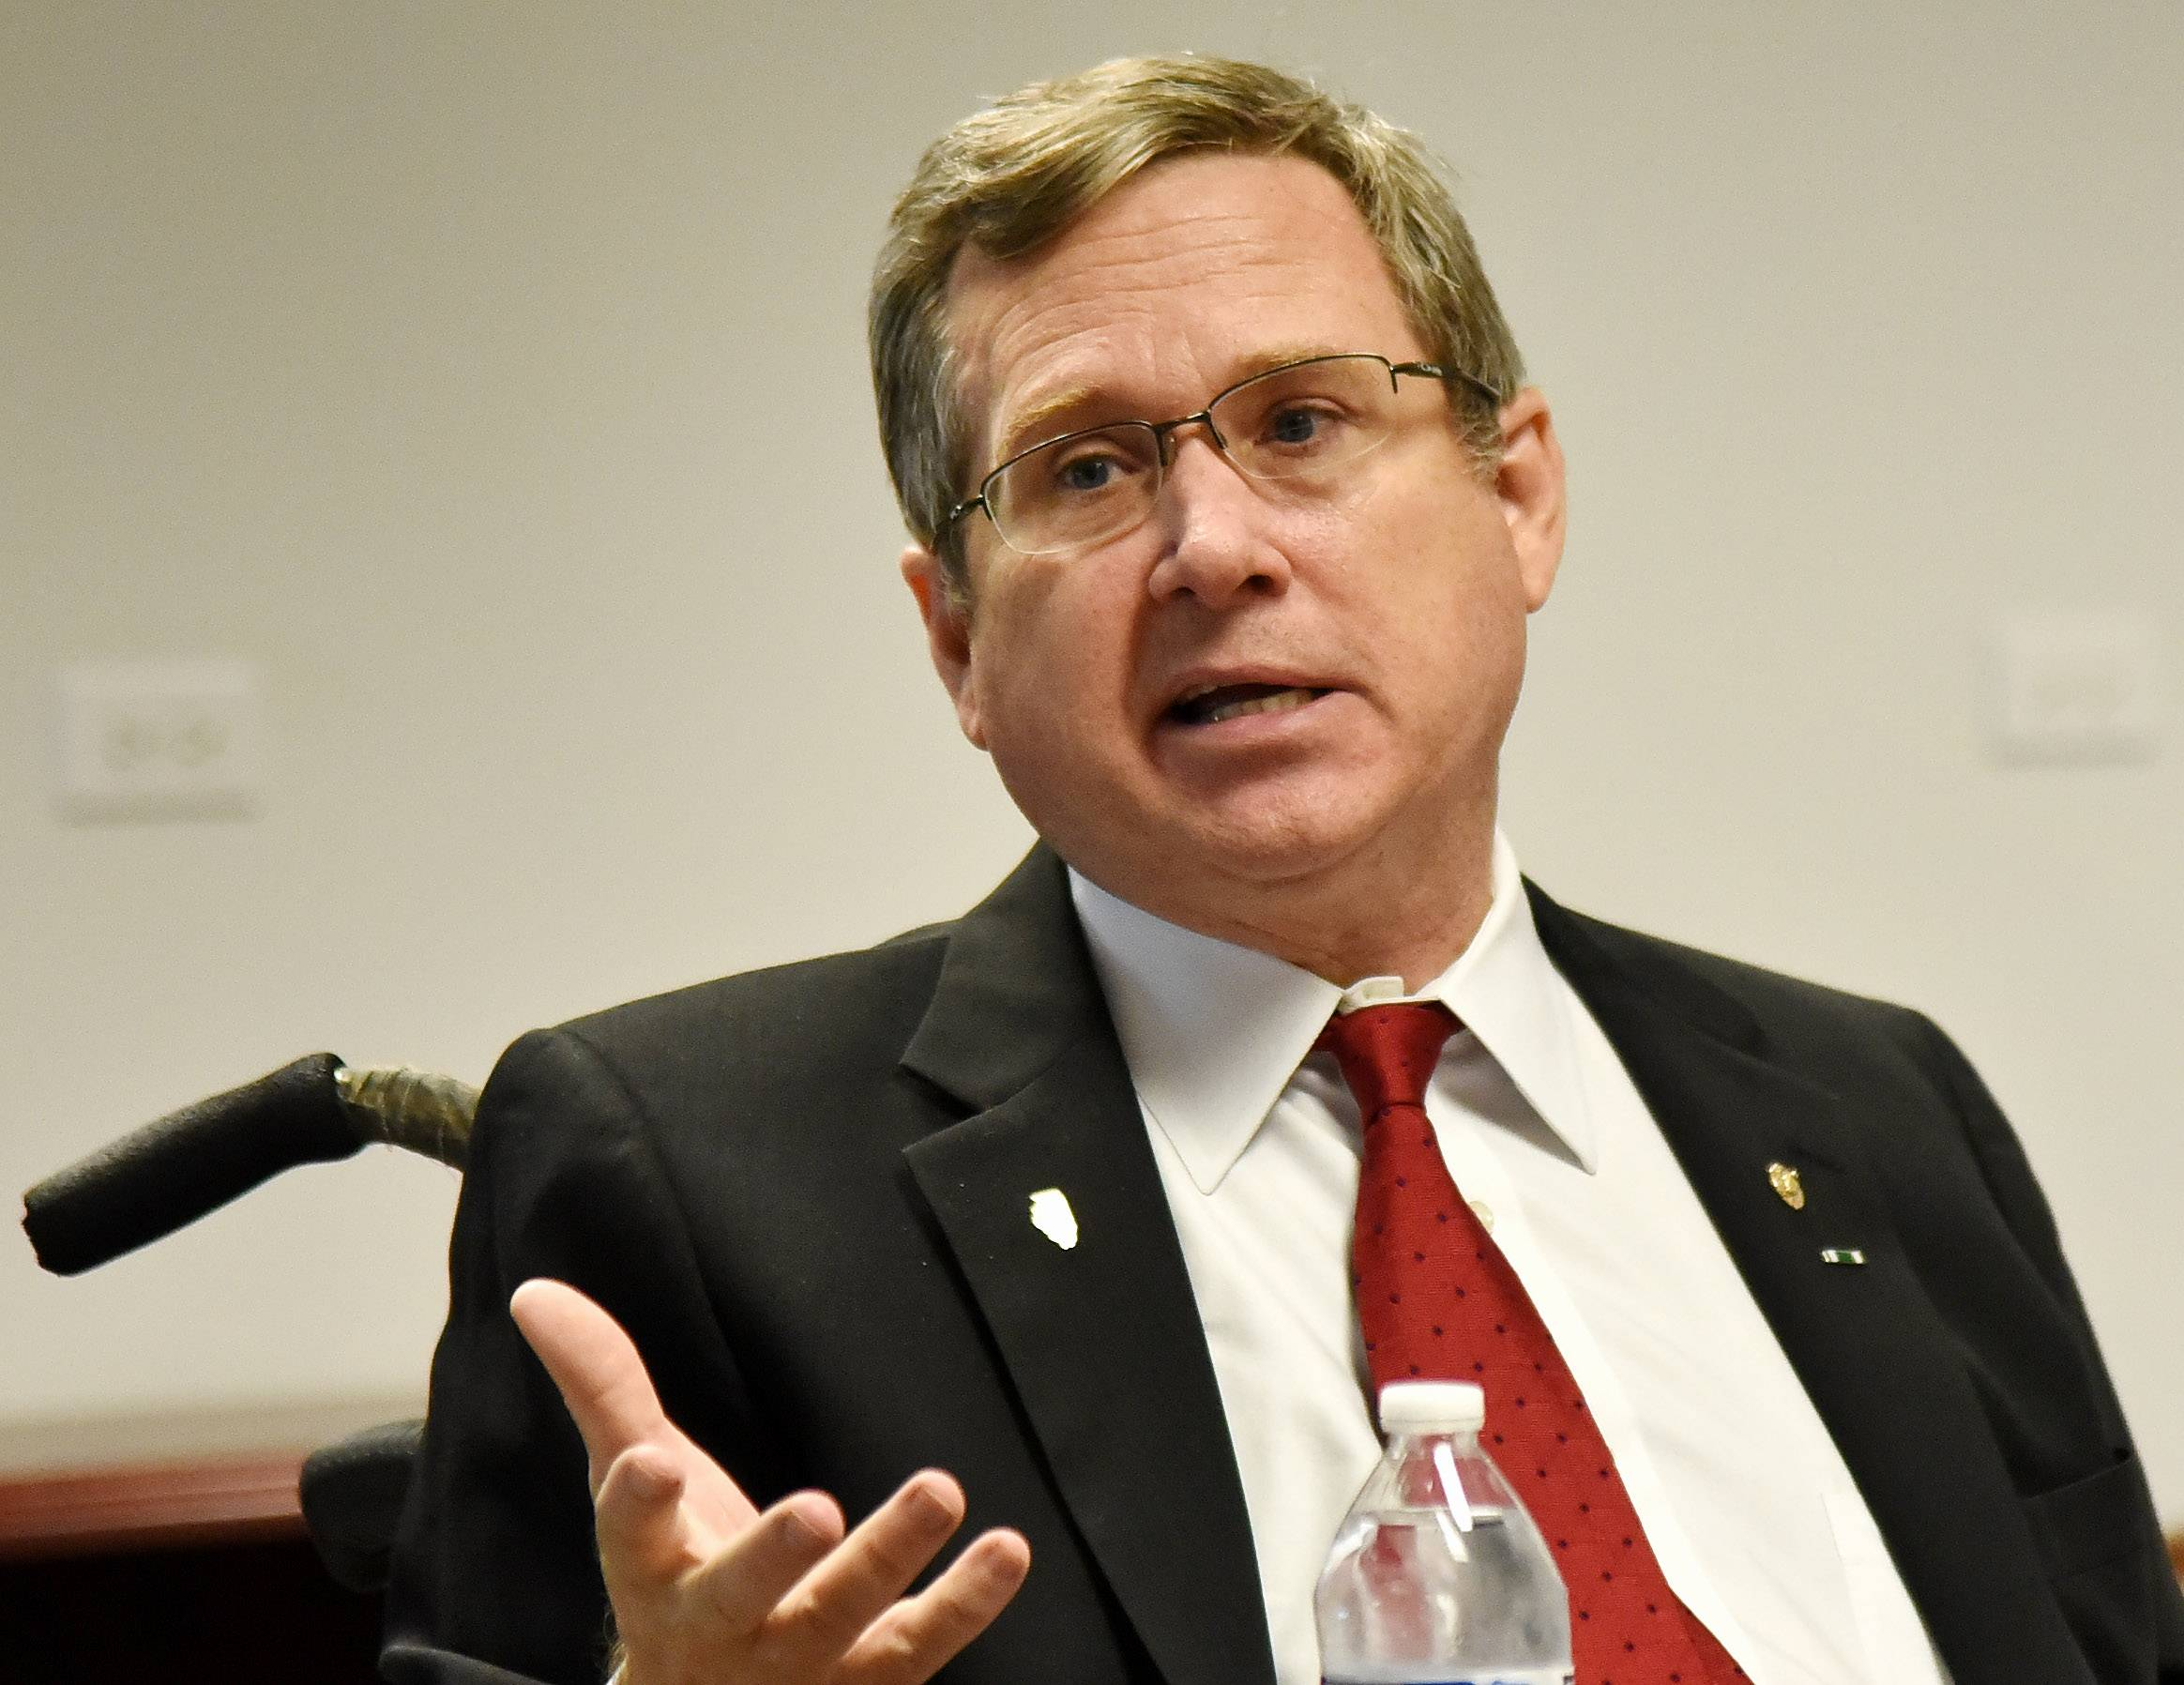 Editorial: Mark Kirk and the lofty goal of bipartisan moderation